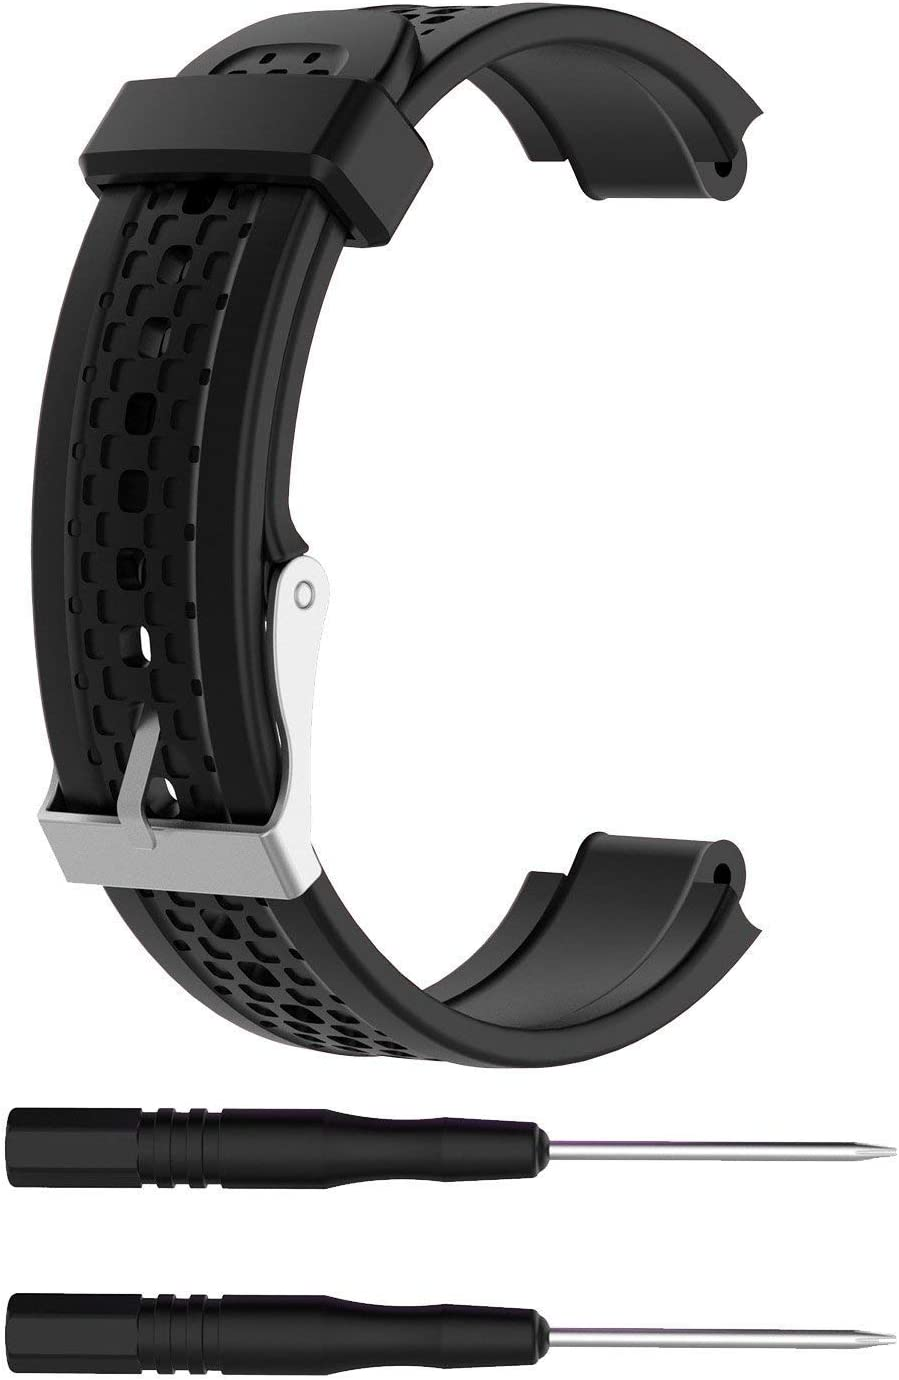 Replacement Band Compatible with Garmin Forerunner 25 GPS Running Watch Wristband Fitness Tracker for Smartphone(Female Strap) with Adapter Tools